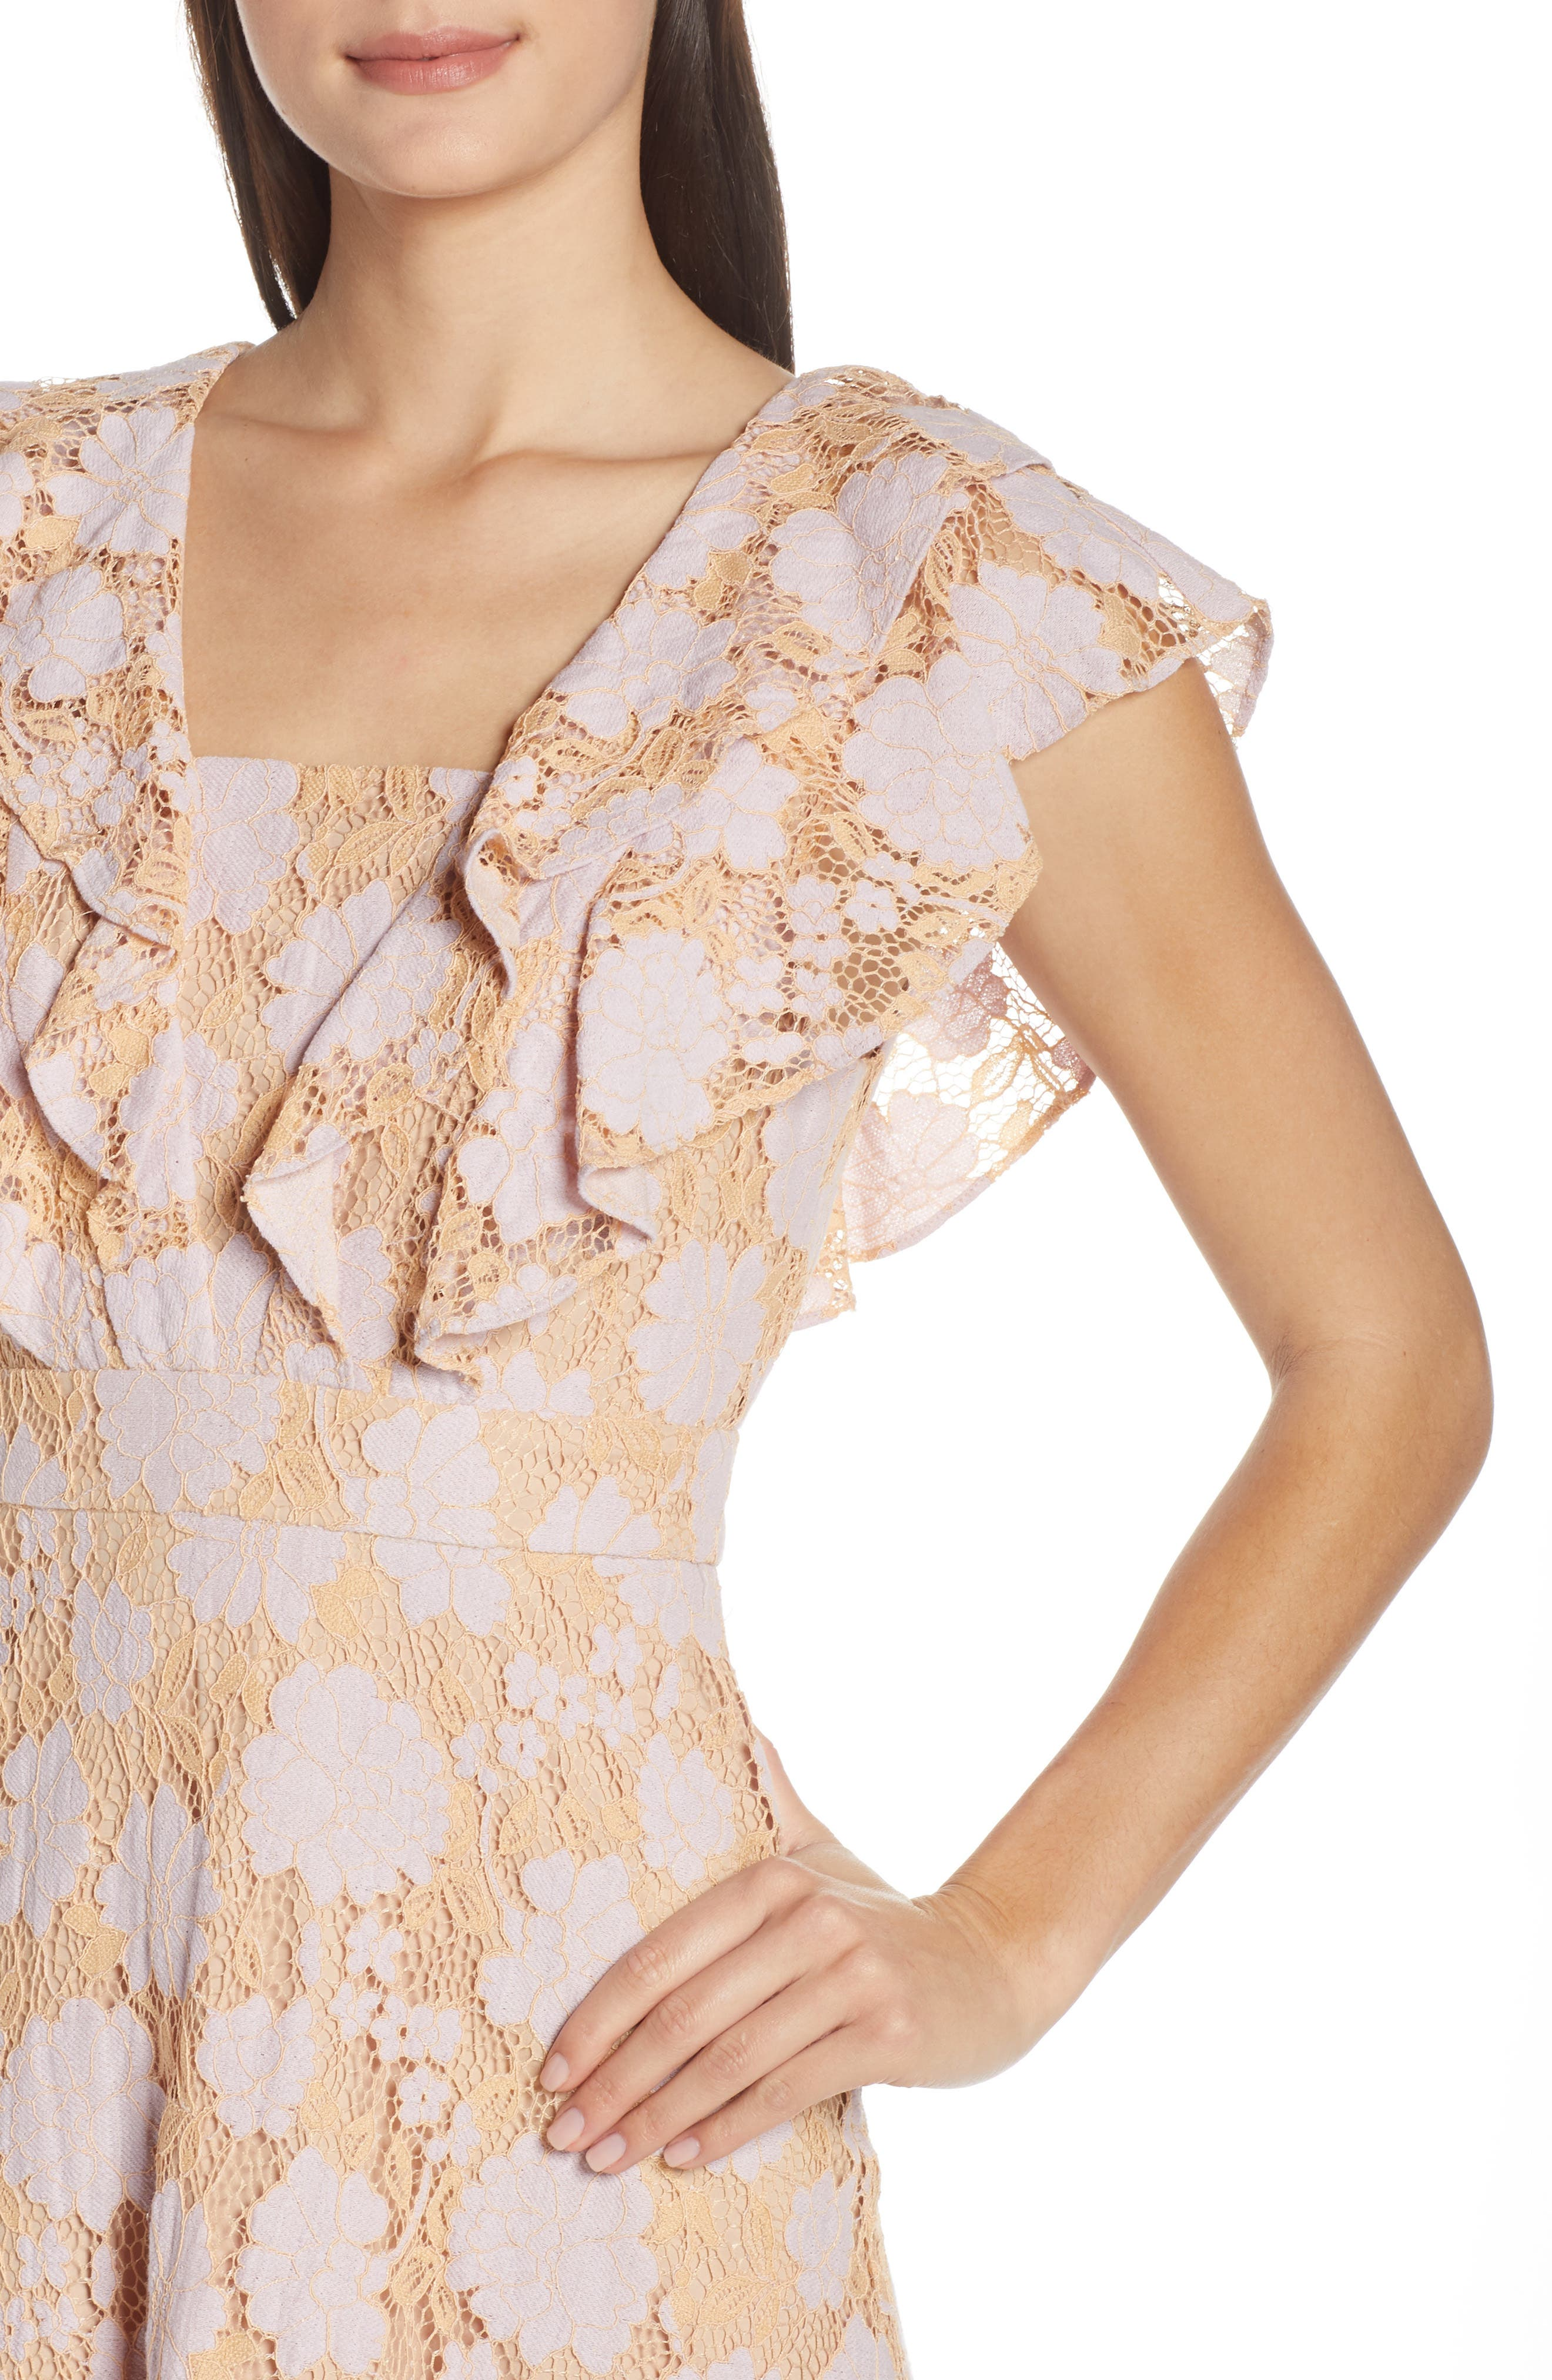 CHARLES HENRY, Ruffle Lace Minidress, Alternate thumbnail 5, color, LILAC-PINK LACE